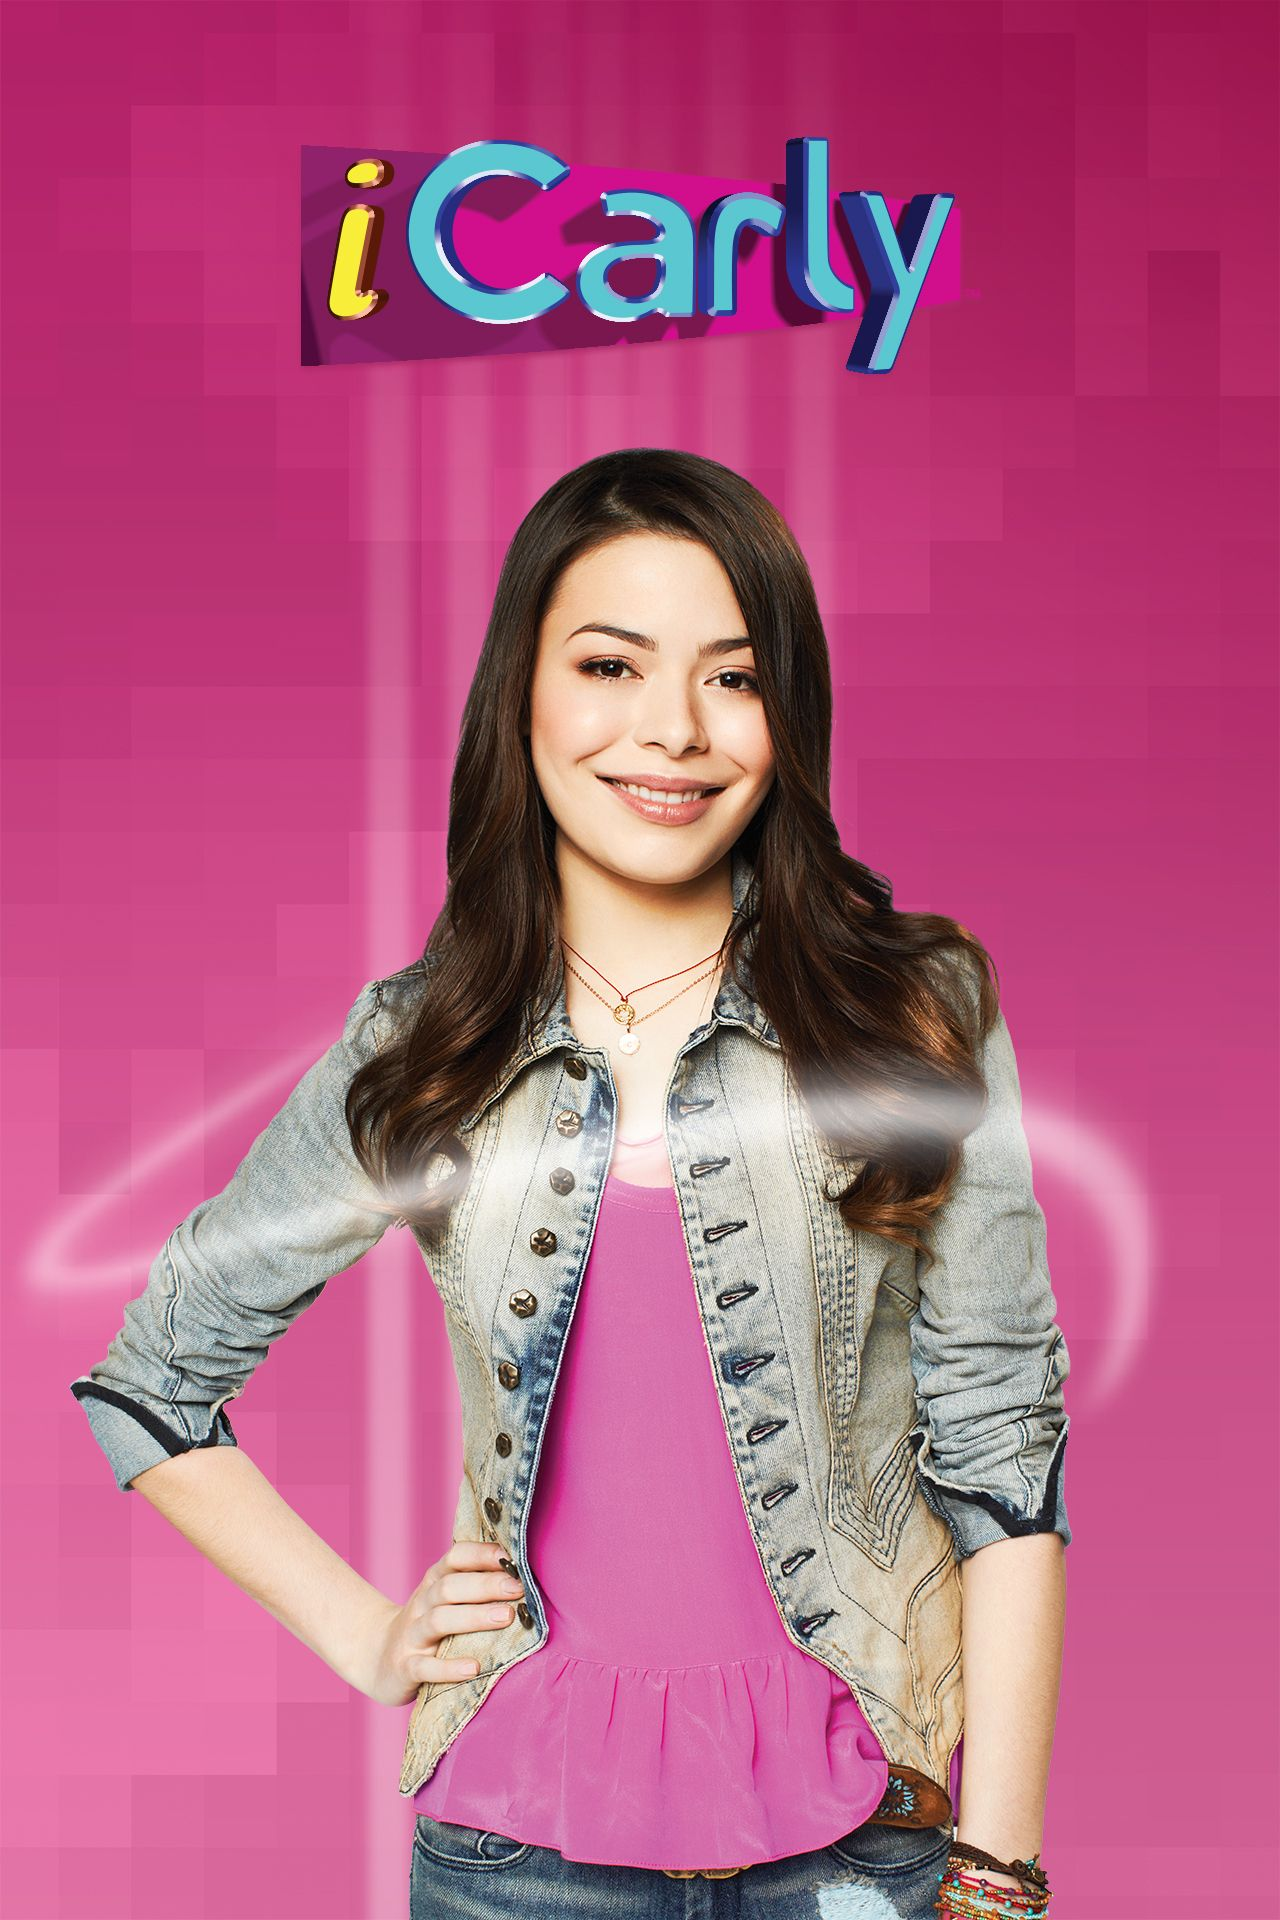 iCarly - Official TV Series | Nickelodeon